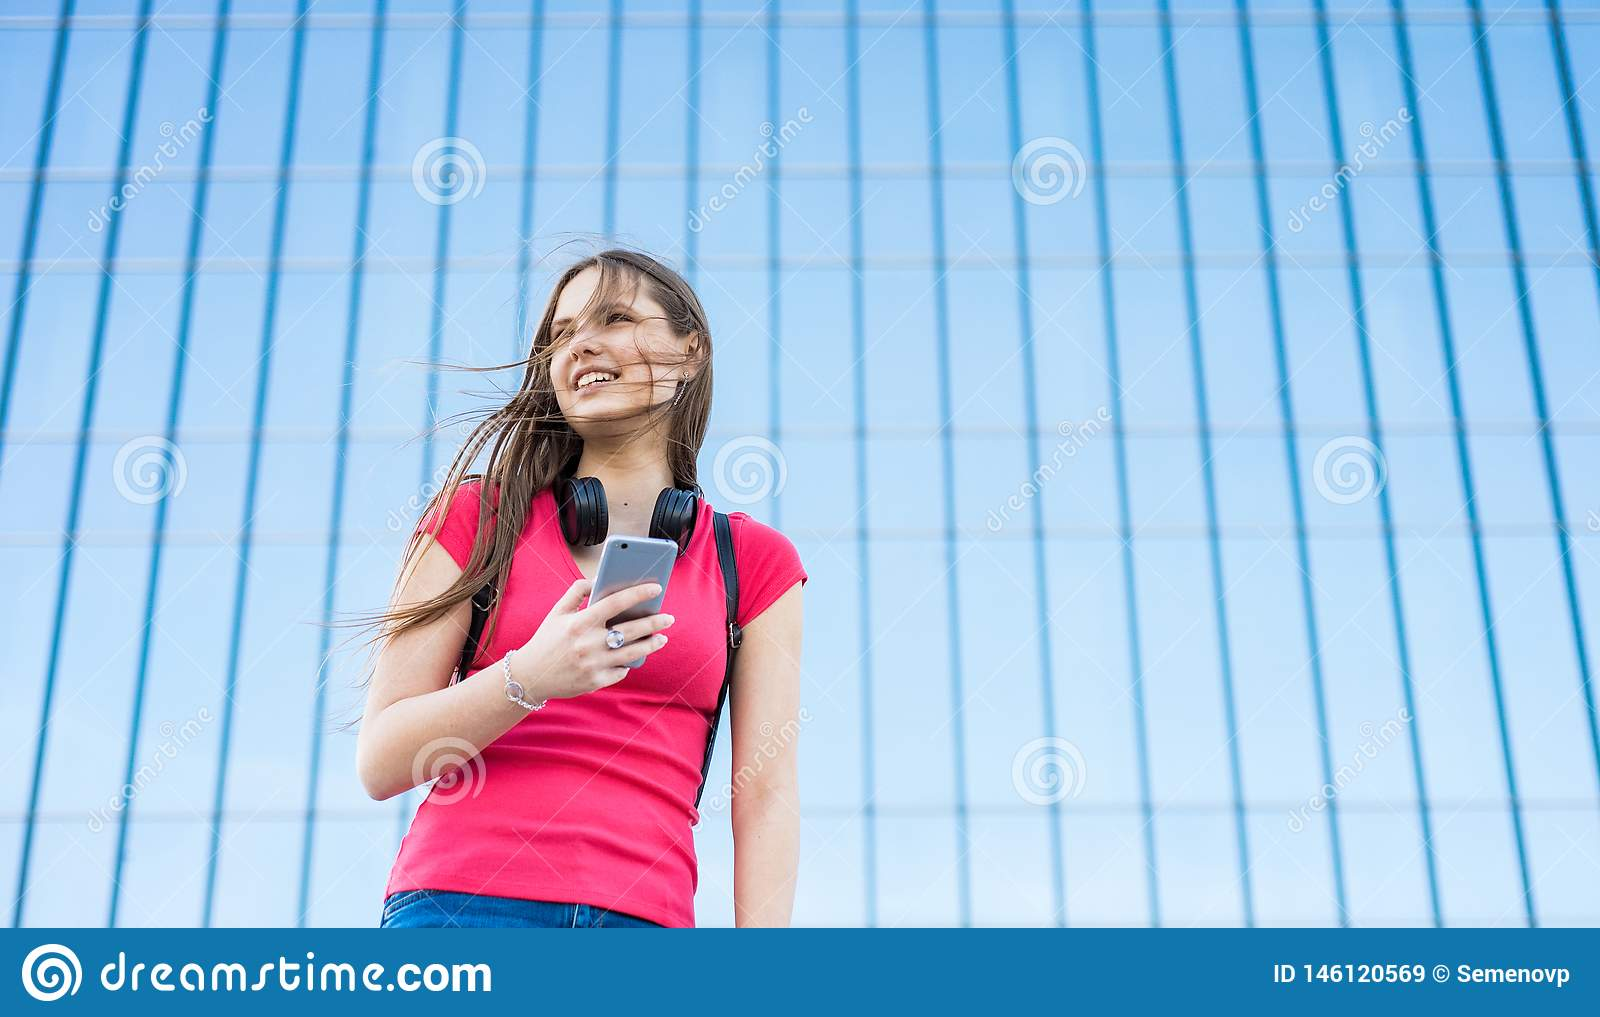 Portrait of young teenager brunette girl in coral t-shirt with long hair. girl on city looking on the smart phone. Glass building